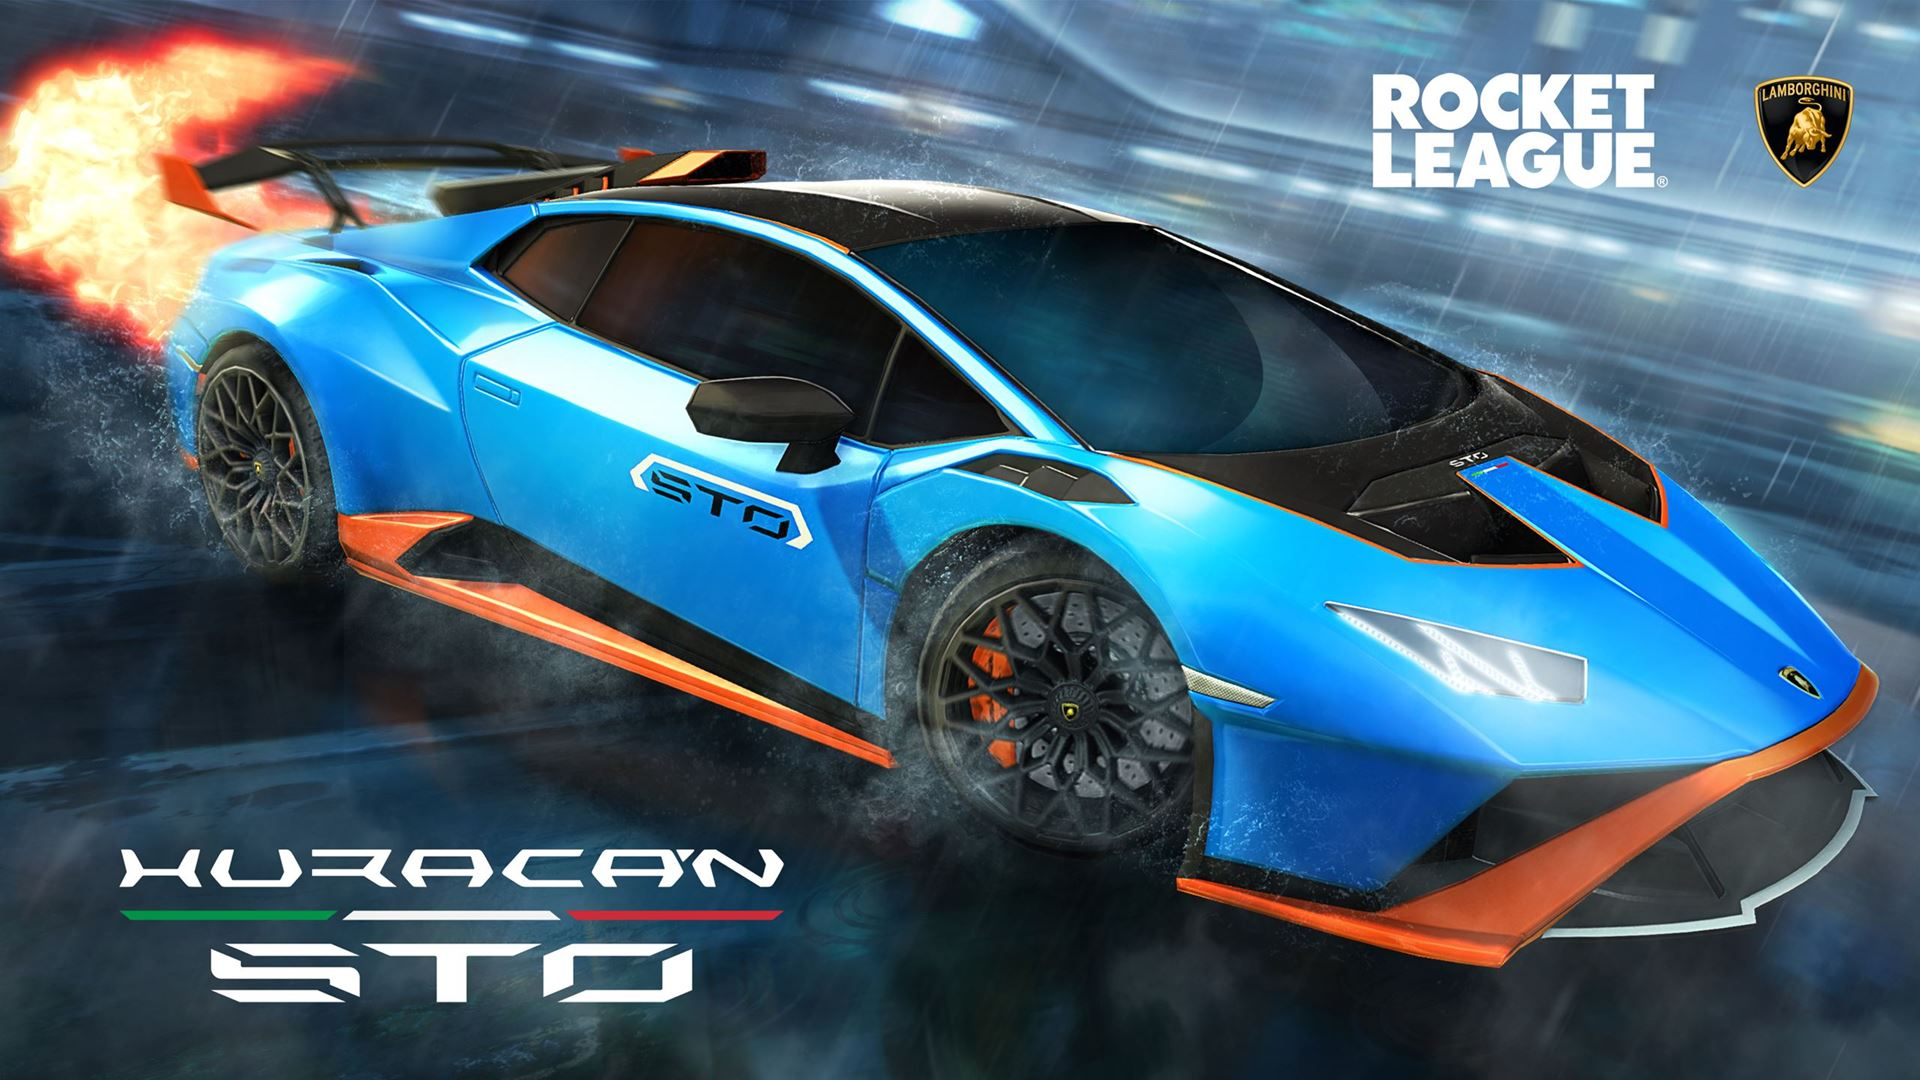 Lamborghini debuts in the Rocket League video game with the Huracán STO - Image 4